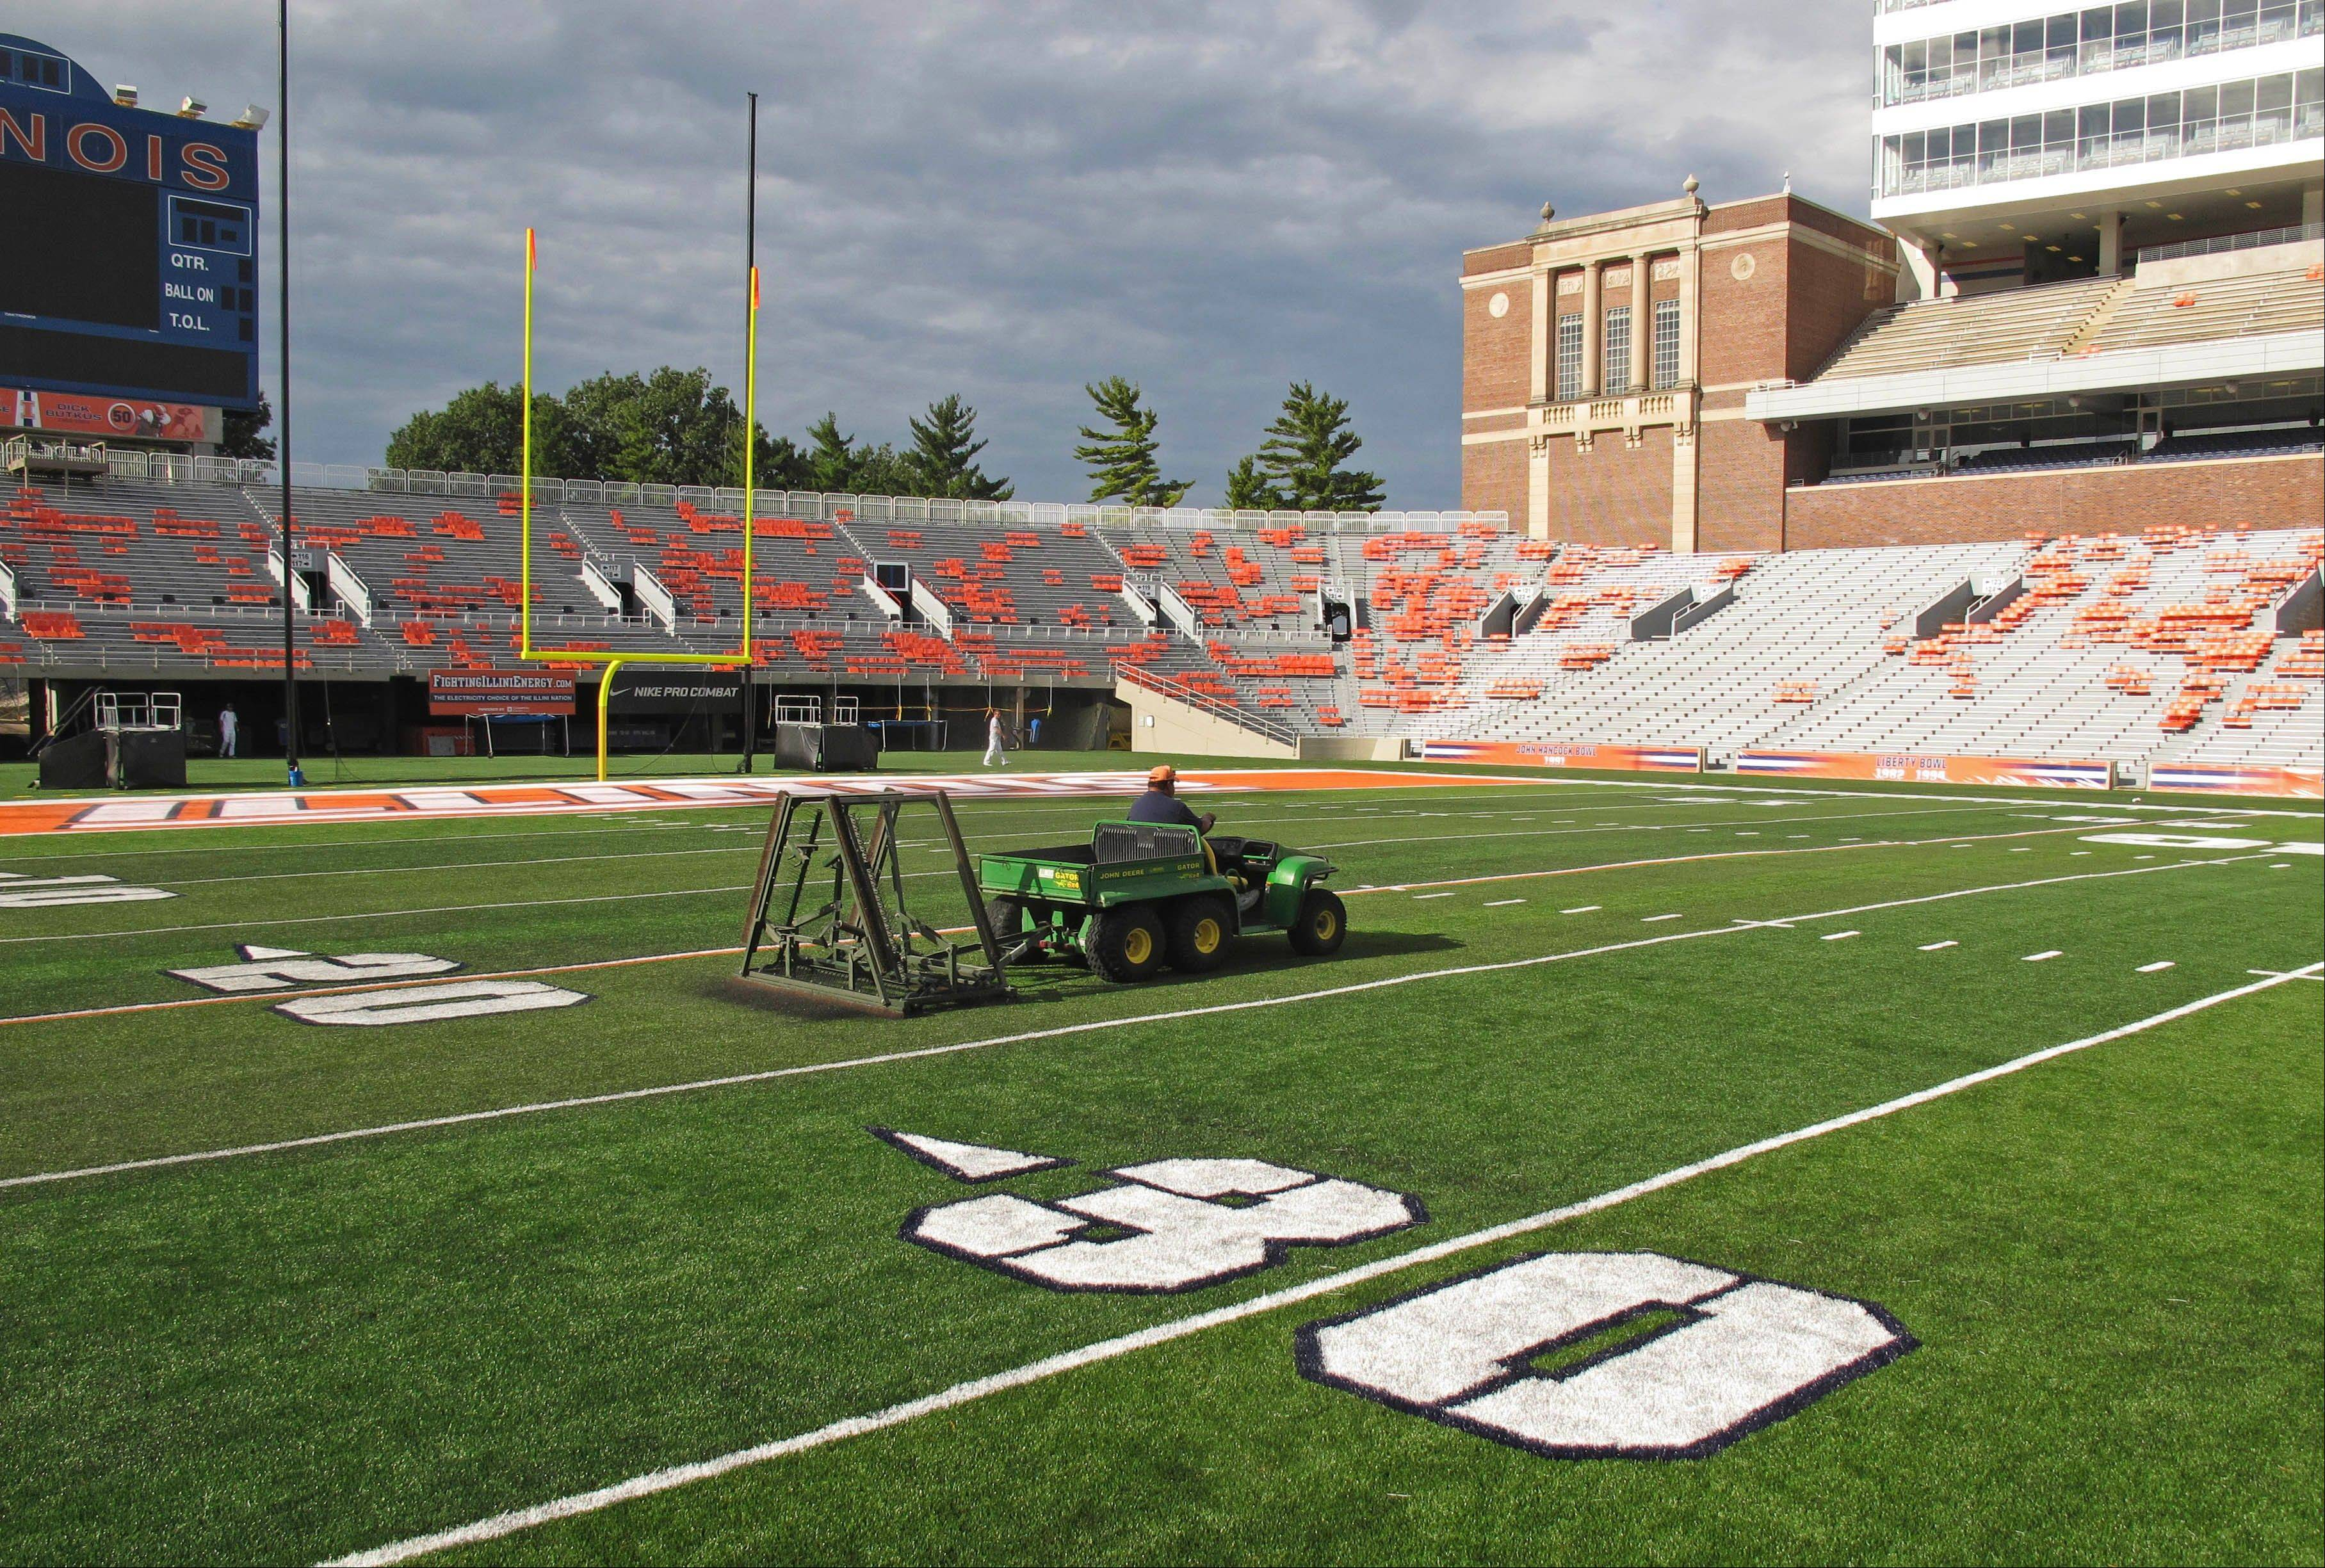 University of Illinois employee Ron Luna grooms the artificial turf Friday at Memorial Stadium in Champaign Illinois is scheduled to open the NCAA college football season on Saturday against Western Michigan. Forecasters say there could be a soaking that produces 6 to 8 inches or more of rain. But school officials say the brand-new turf can drain about 10 inches of rain an hour.